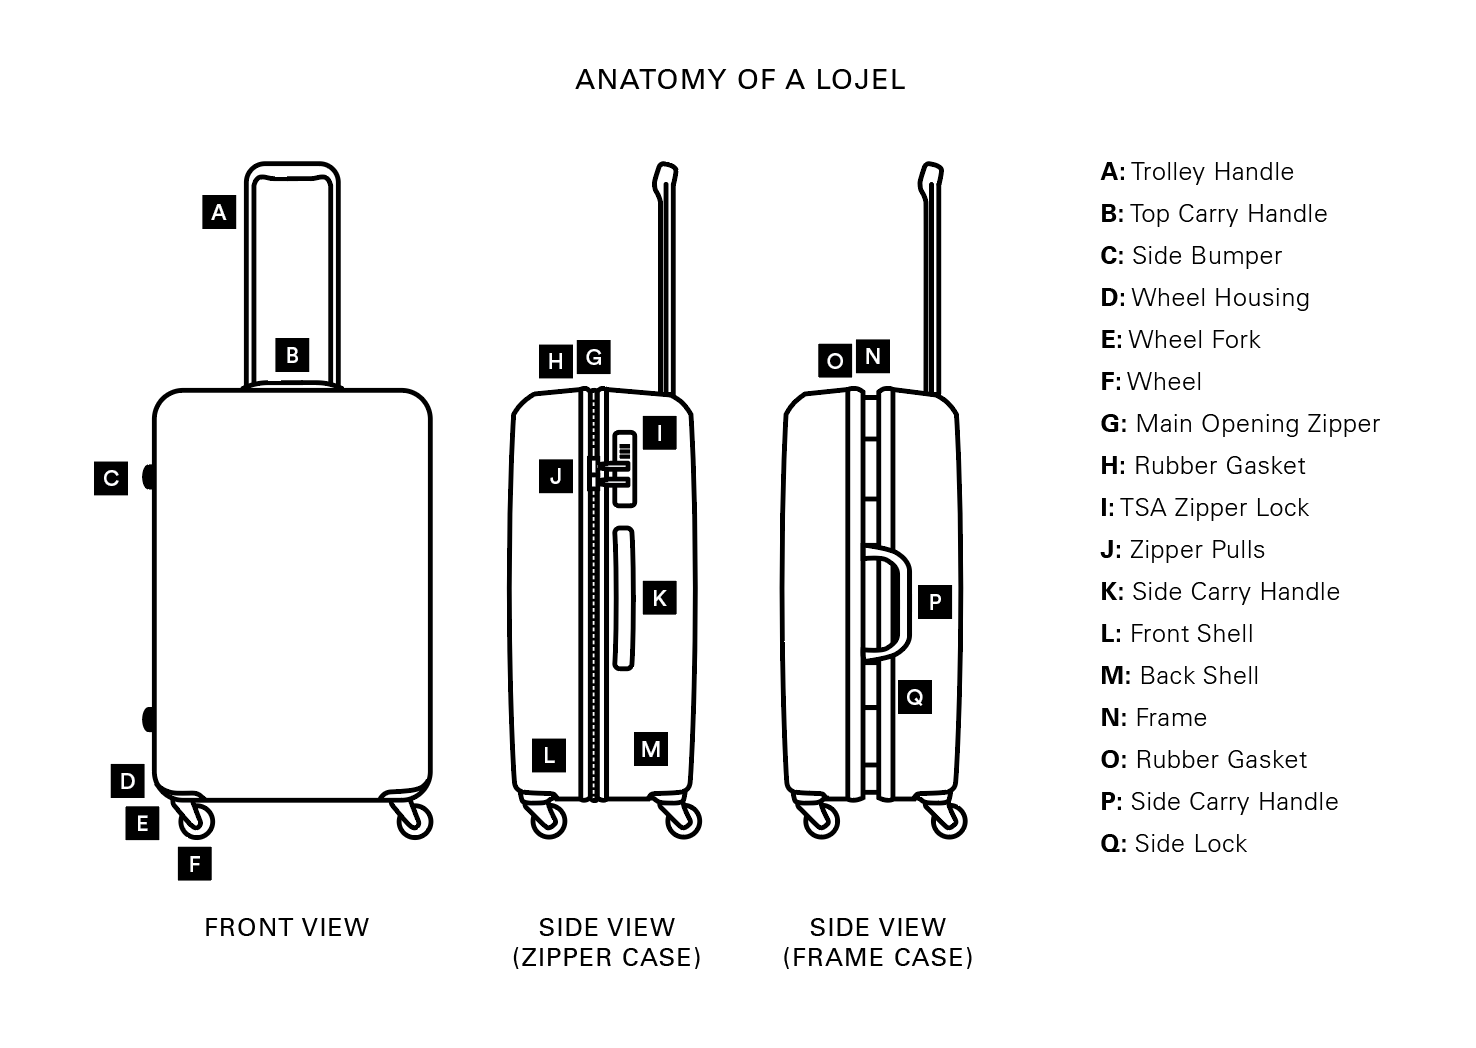 Warranty Lojel Let Our Journeys Enrich Life Series Parallel Diagram After Youve Contacted Us Well Connect You With A Local Dealer Distributor Or Repair Center Partner To Take Closer Look At The Issue And